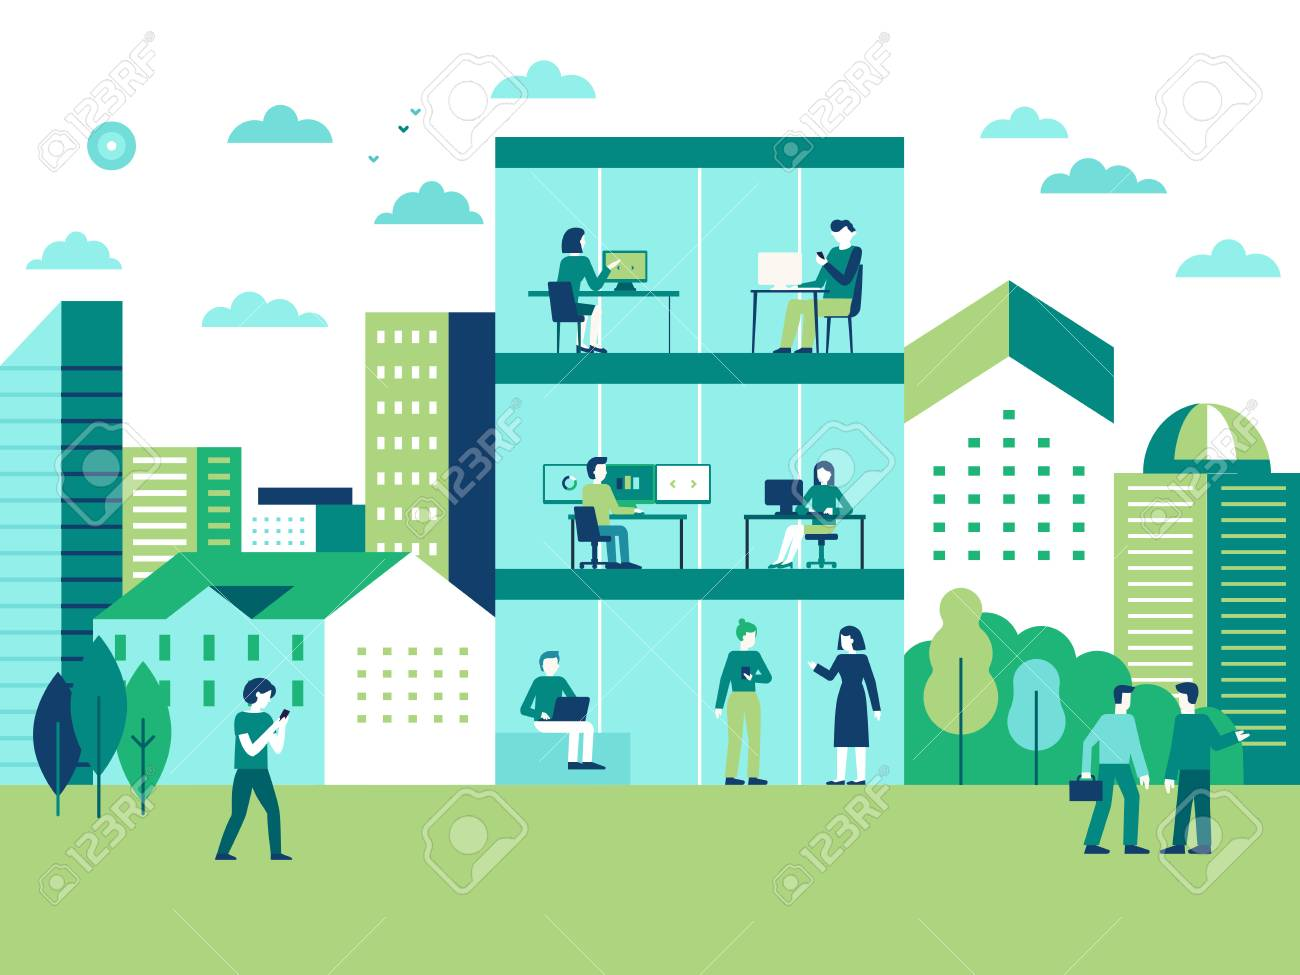 Vector illustration in flat simple style with characters - city landscape and coworking center with people working at the computers and laptops - teamwork and cooperation concept - 128168178